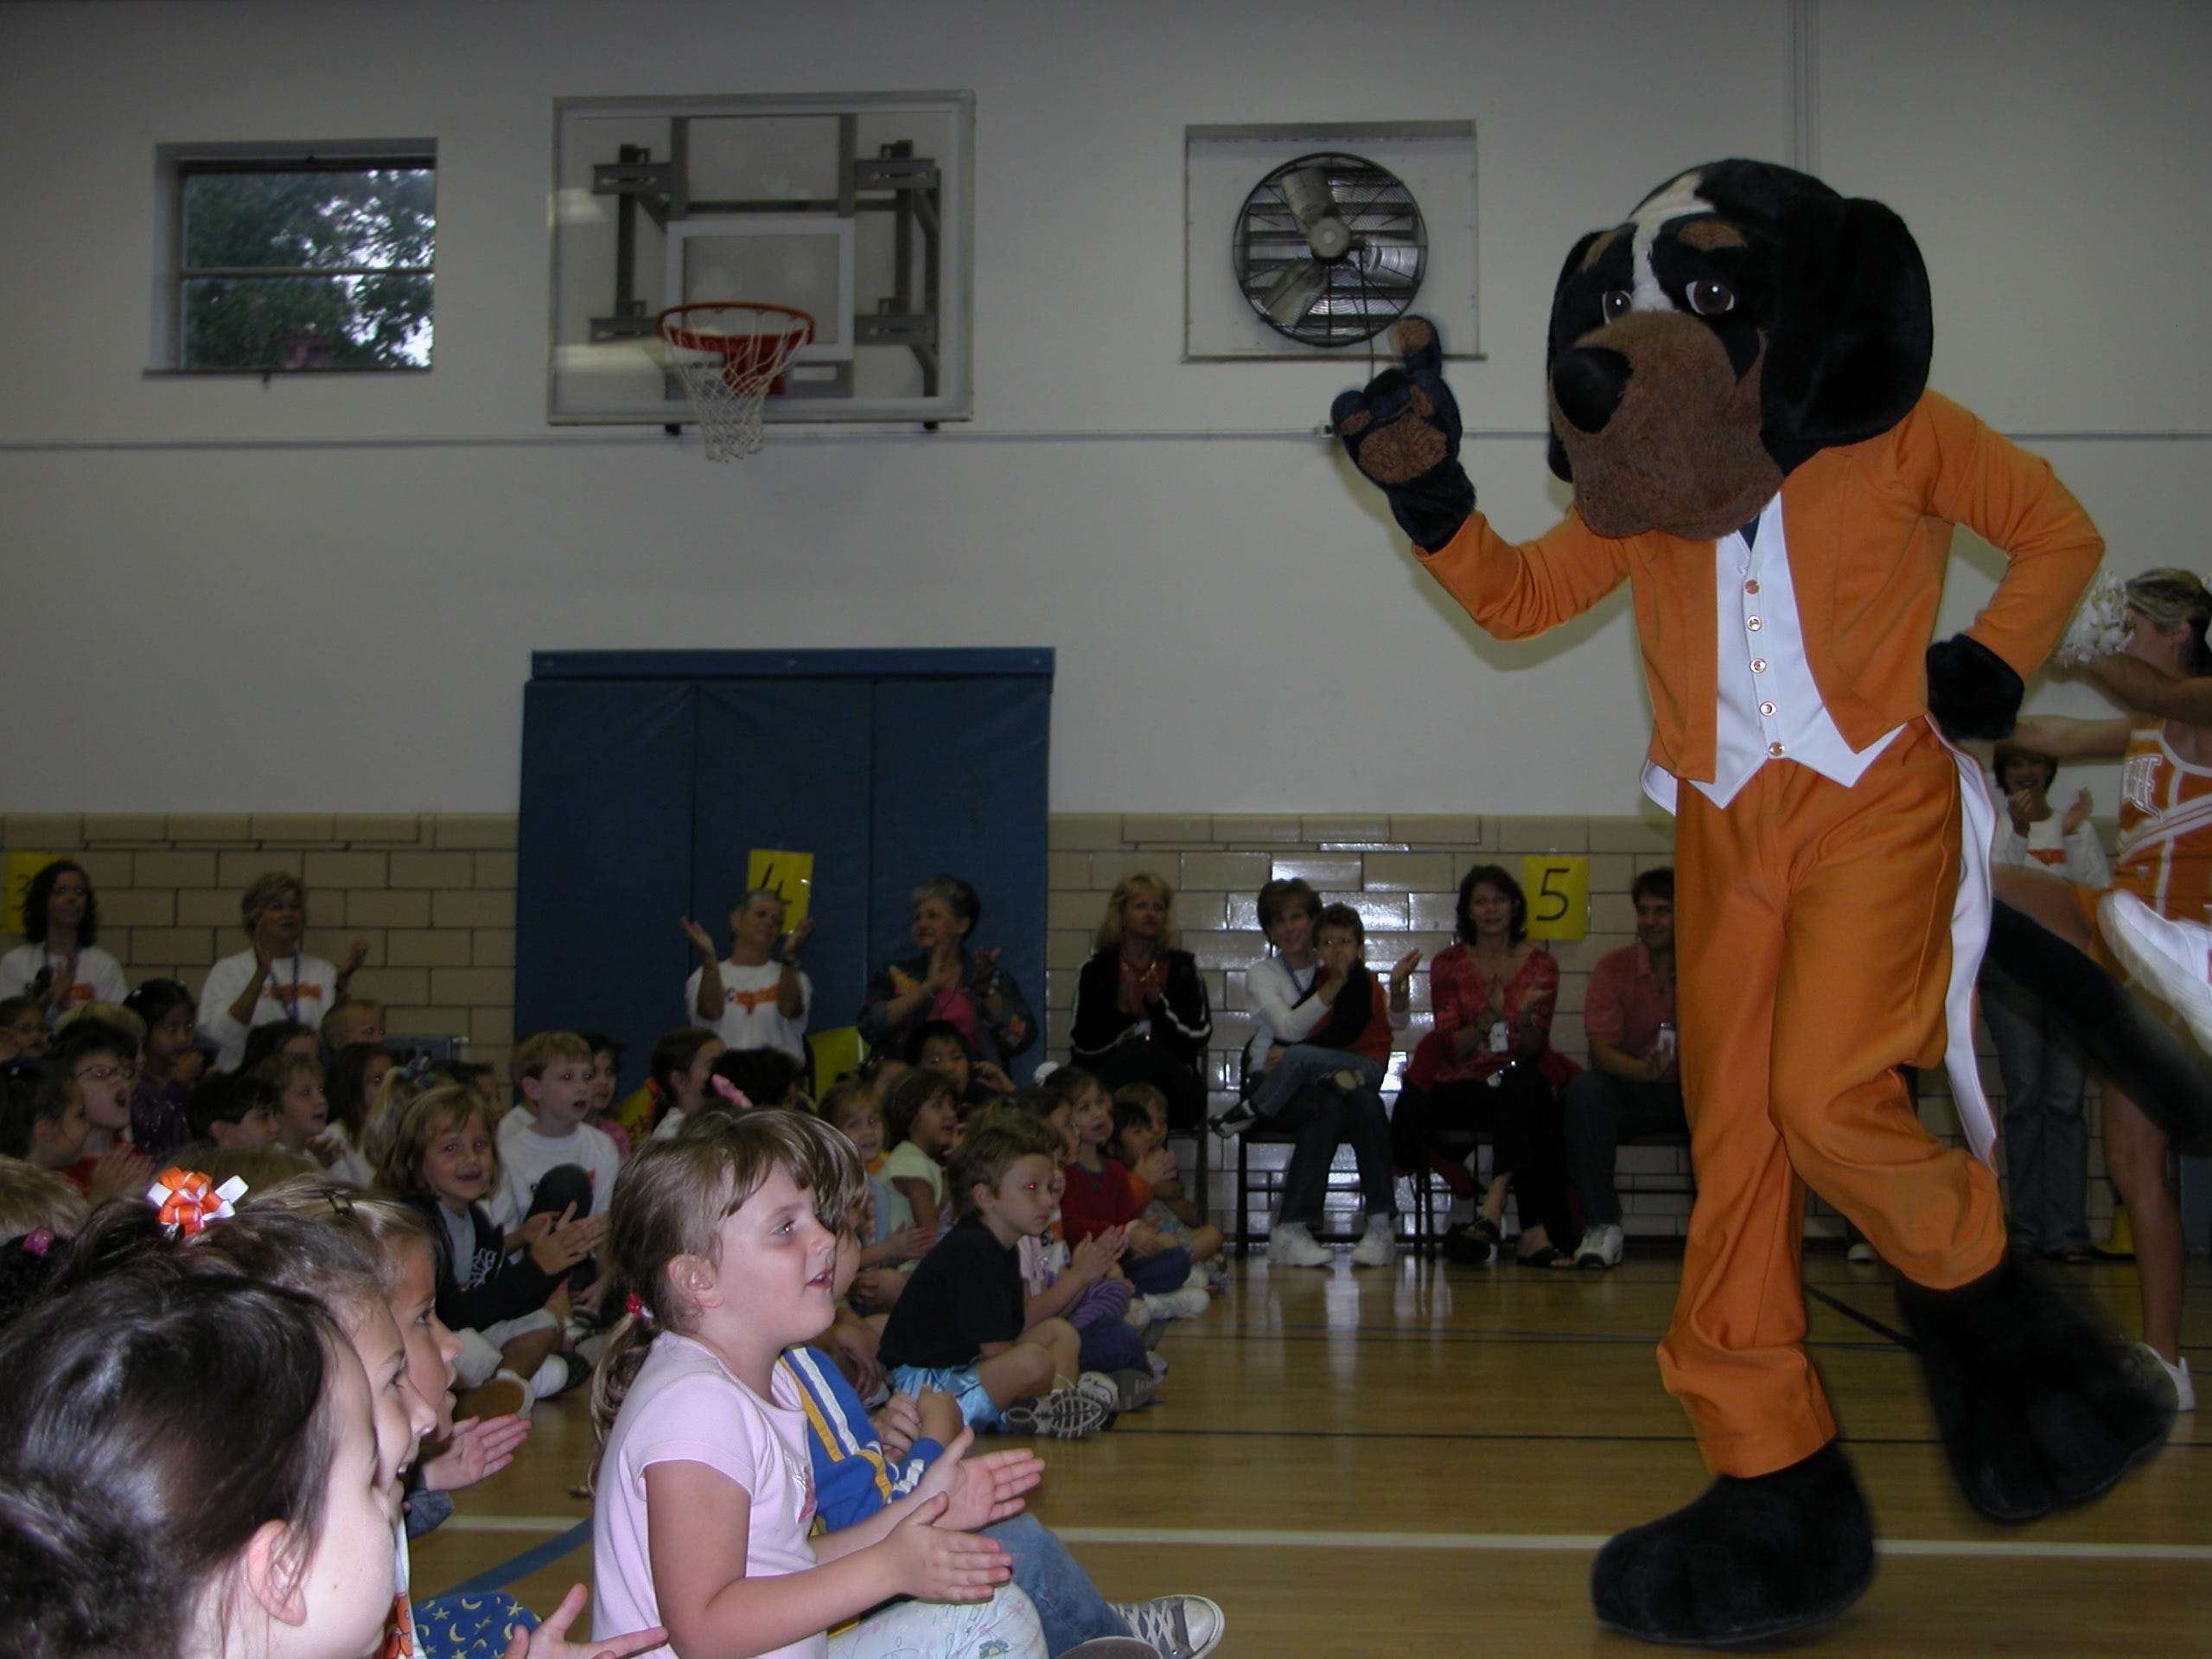 Smokey the Dog dances for Sequoyah Elementary students during their annual coupon book celebration Oct. 12. The school raised over $24,000 in coupon book sales.